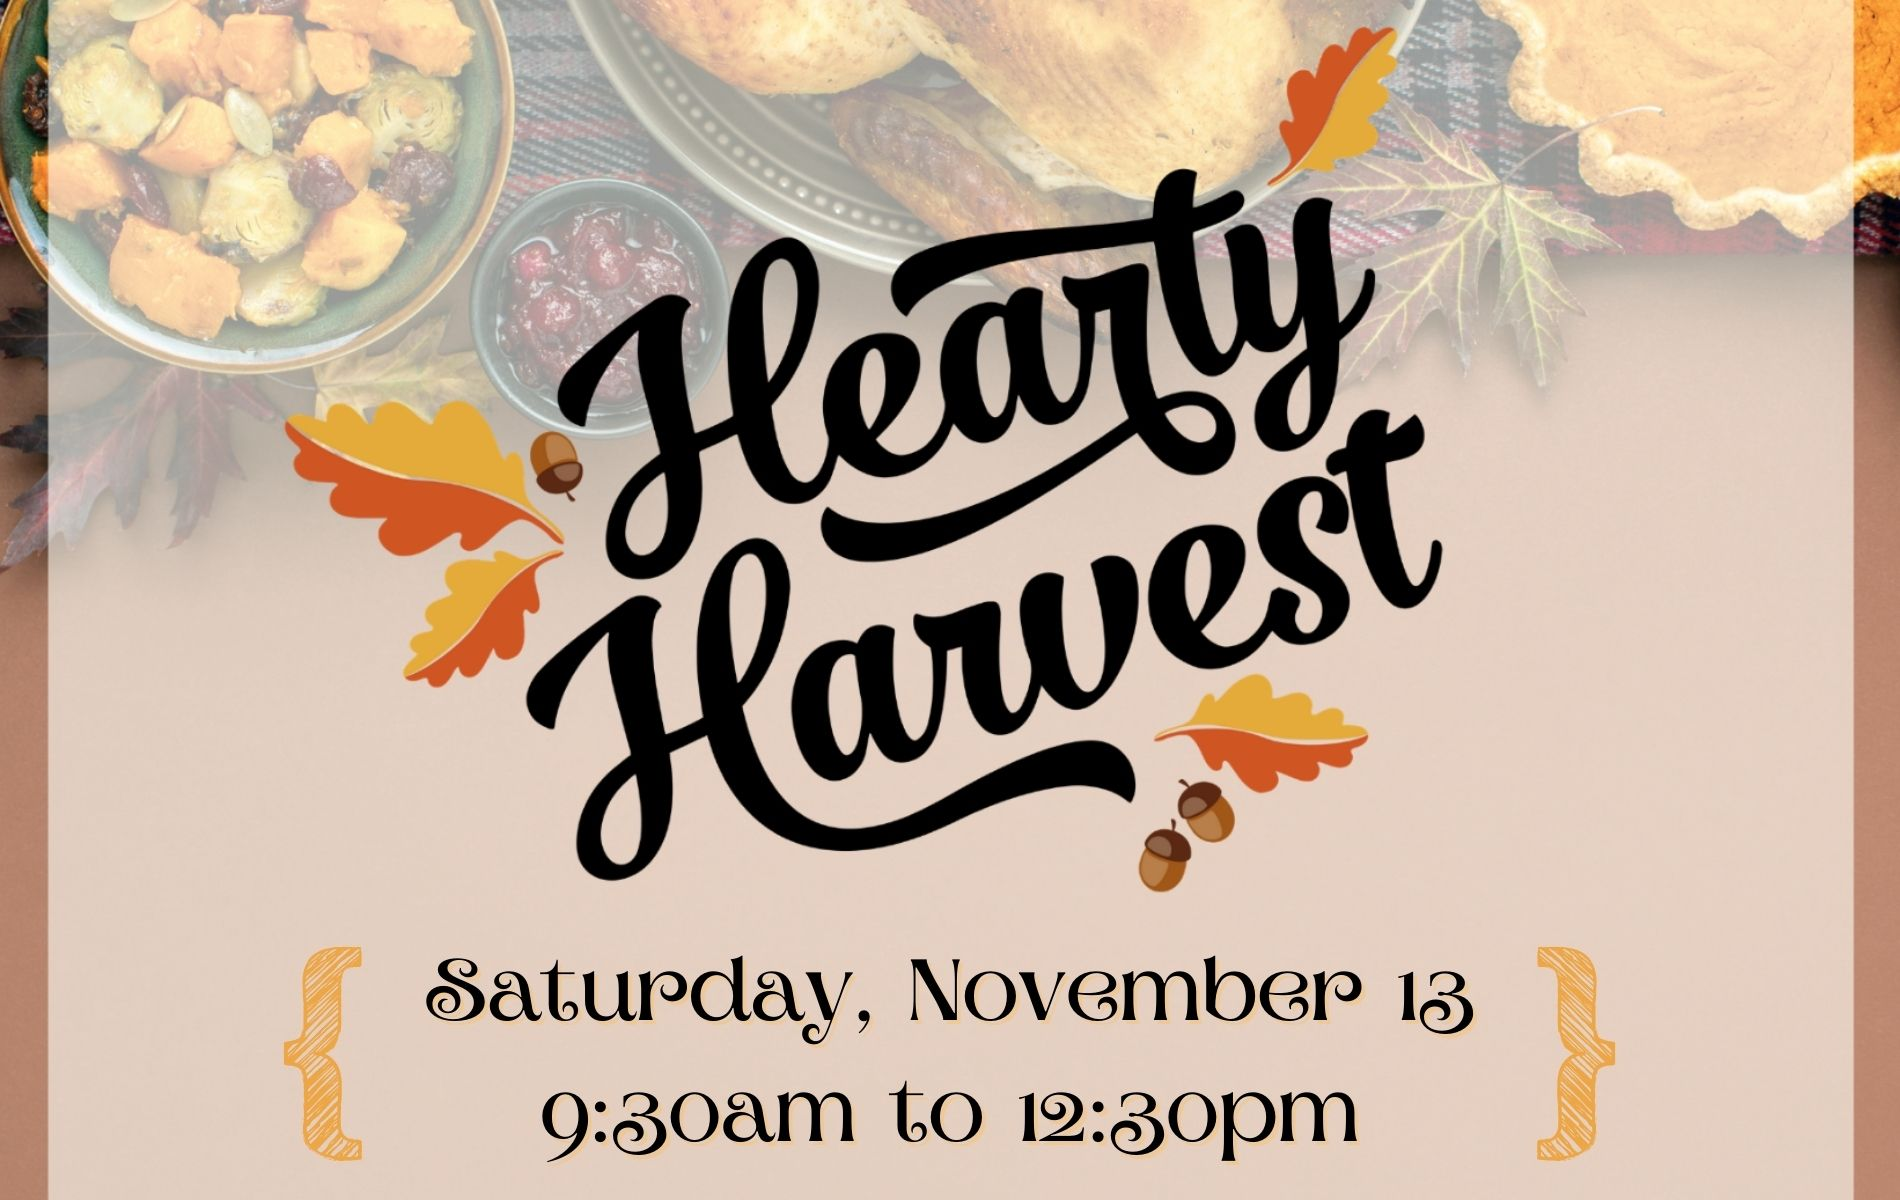 Hearty Harvest 1610 (1)